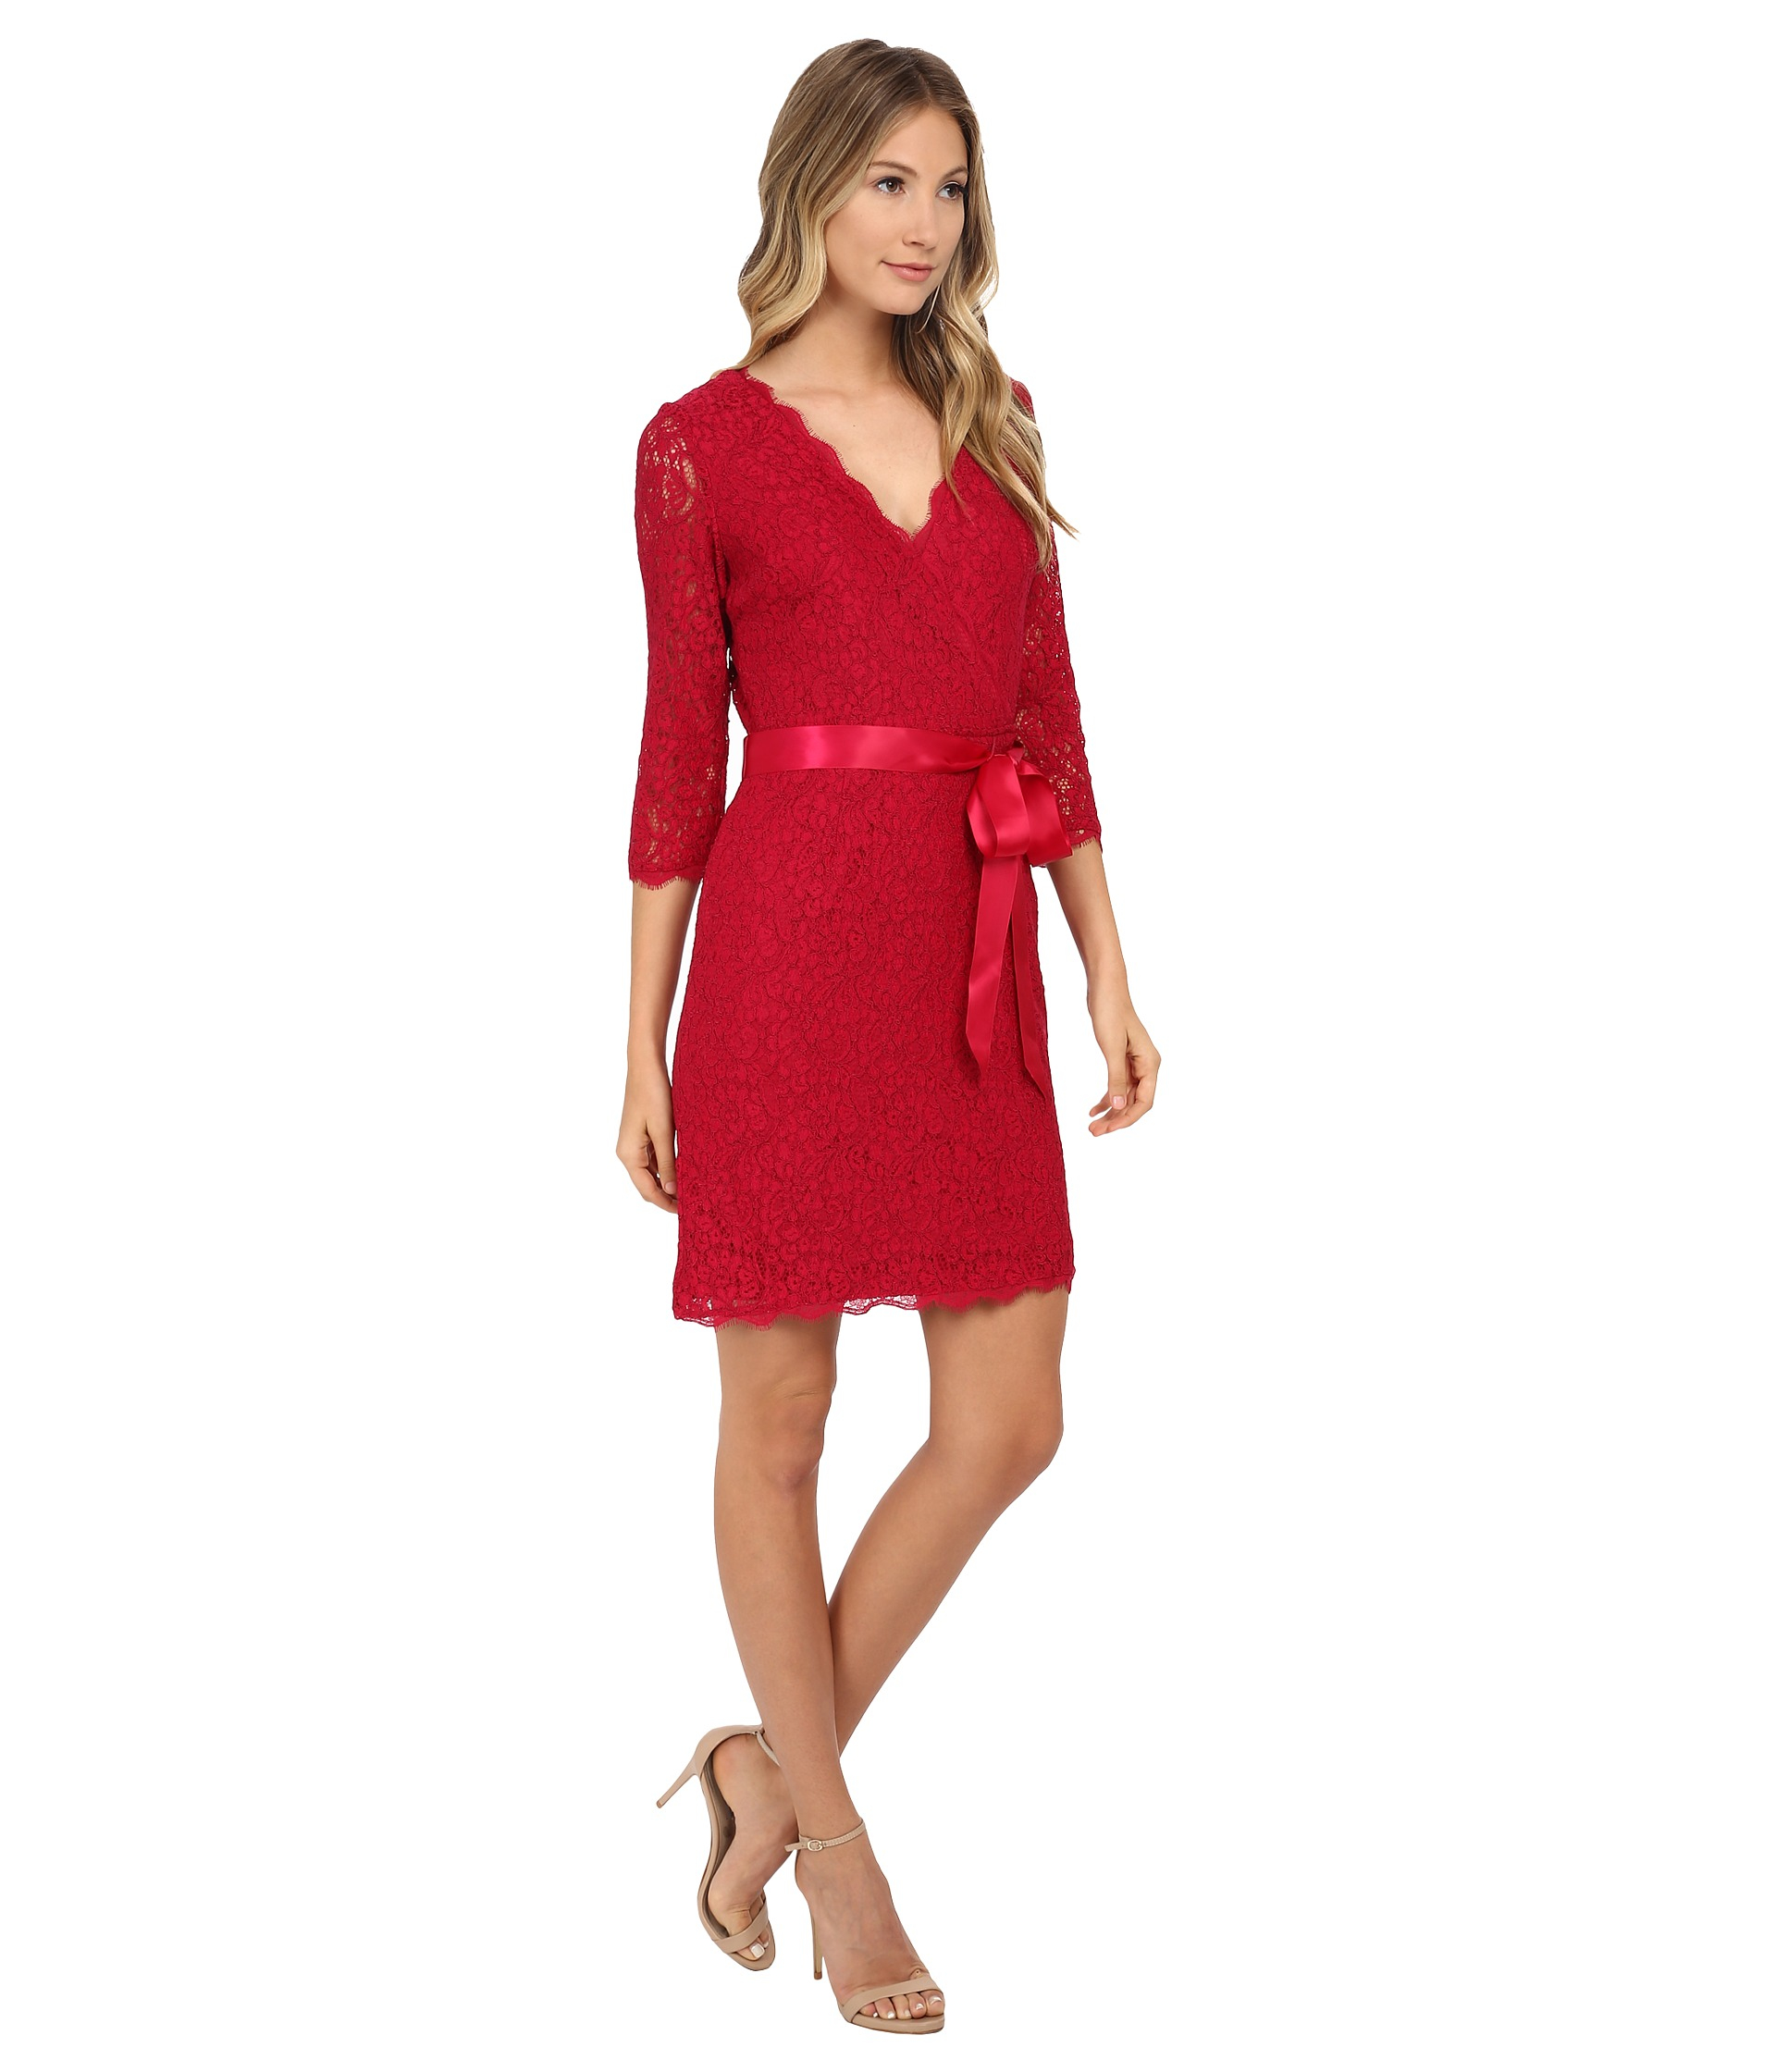 Quarter Sleeve Red Lace Cocktail Dress